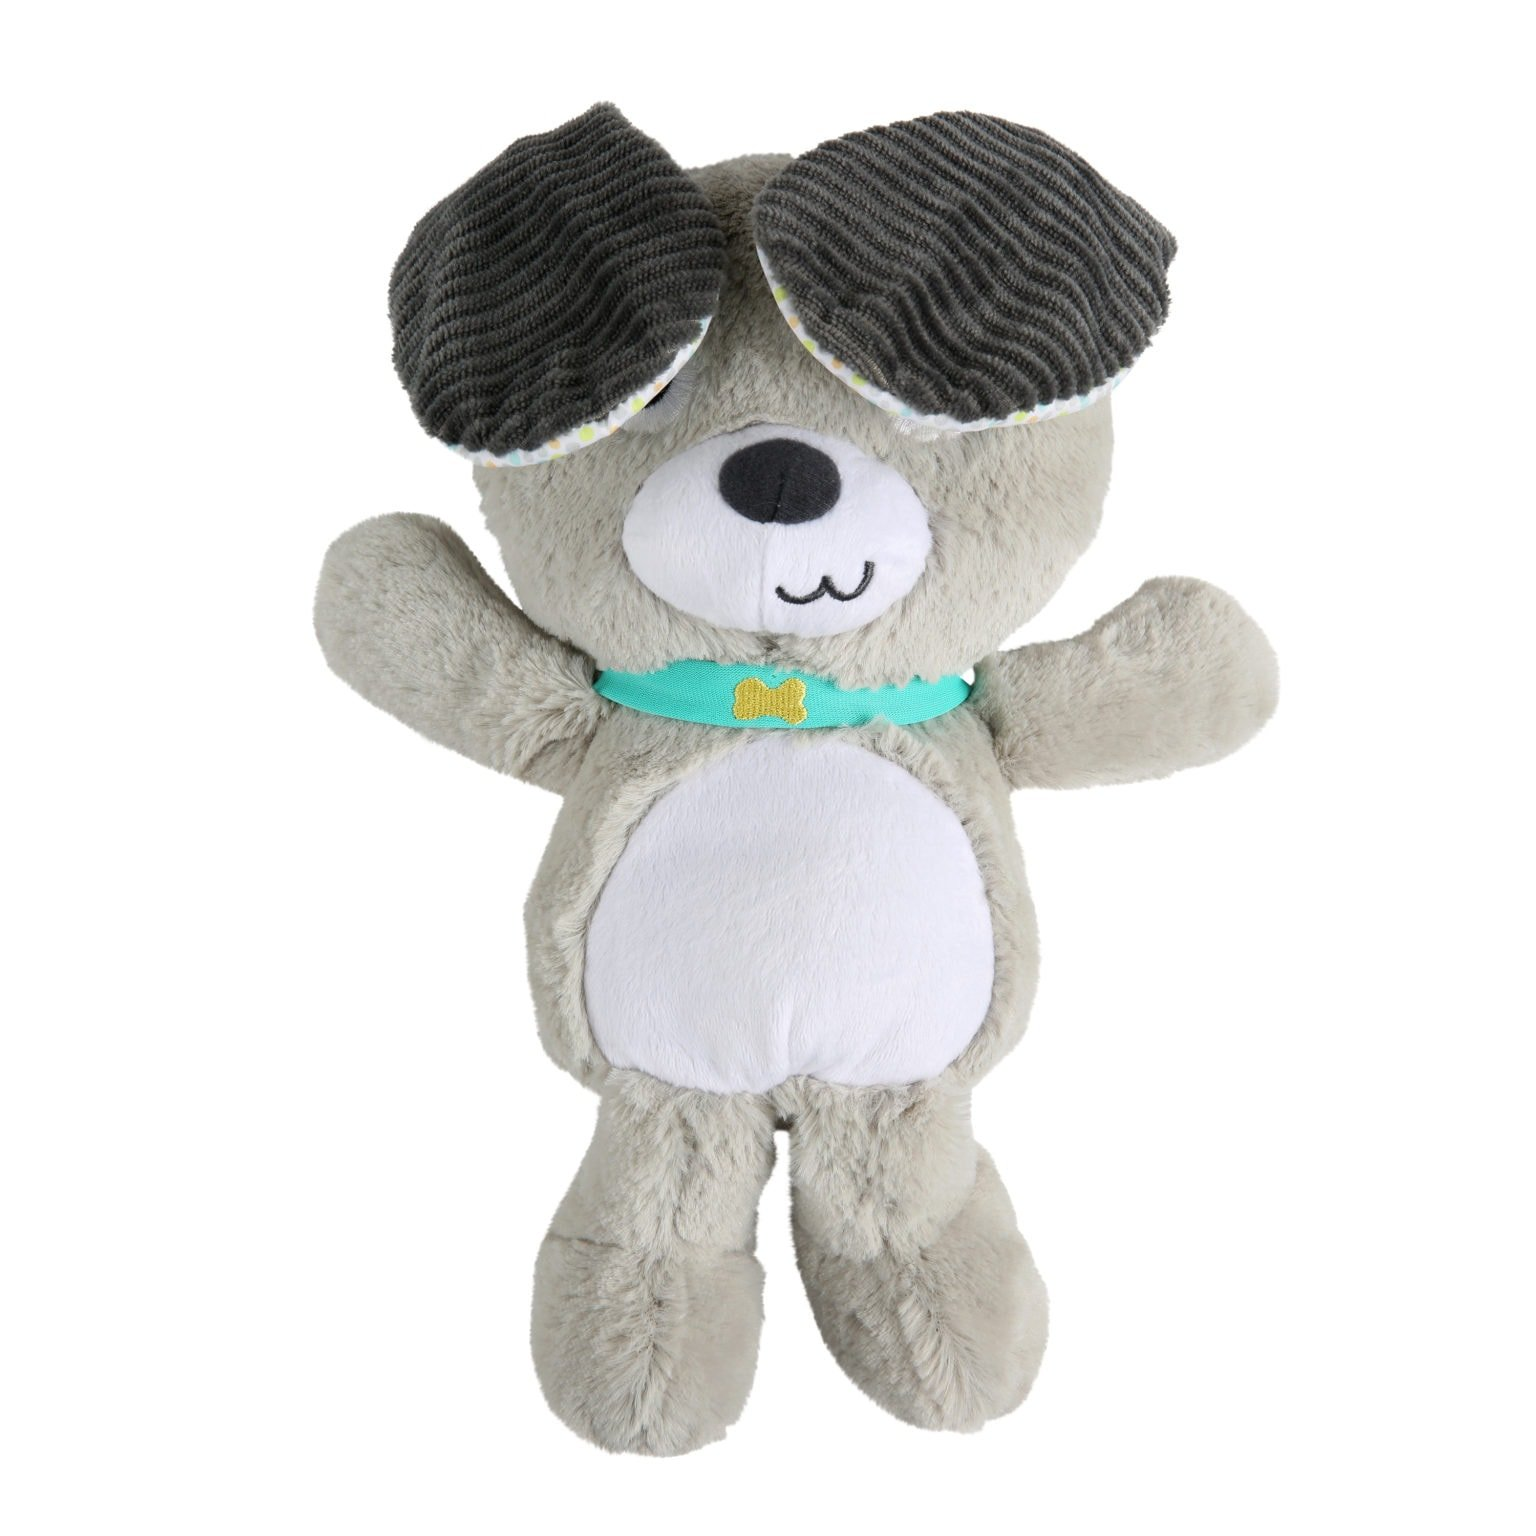 Bright Starts - Belly laughs puppy (11781)